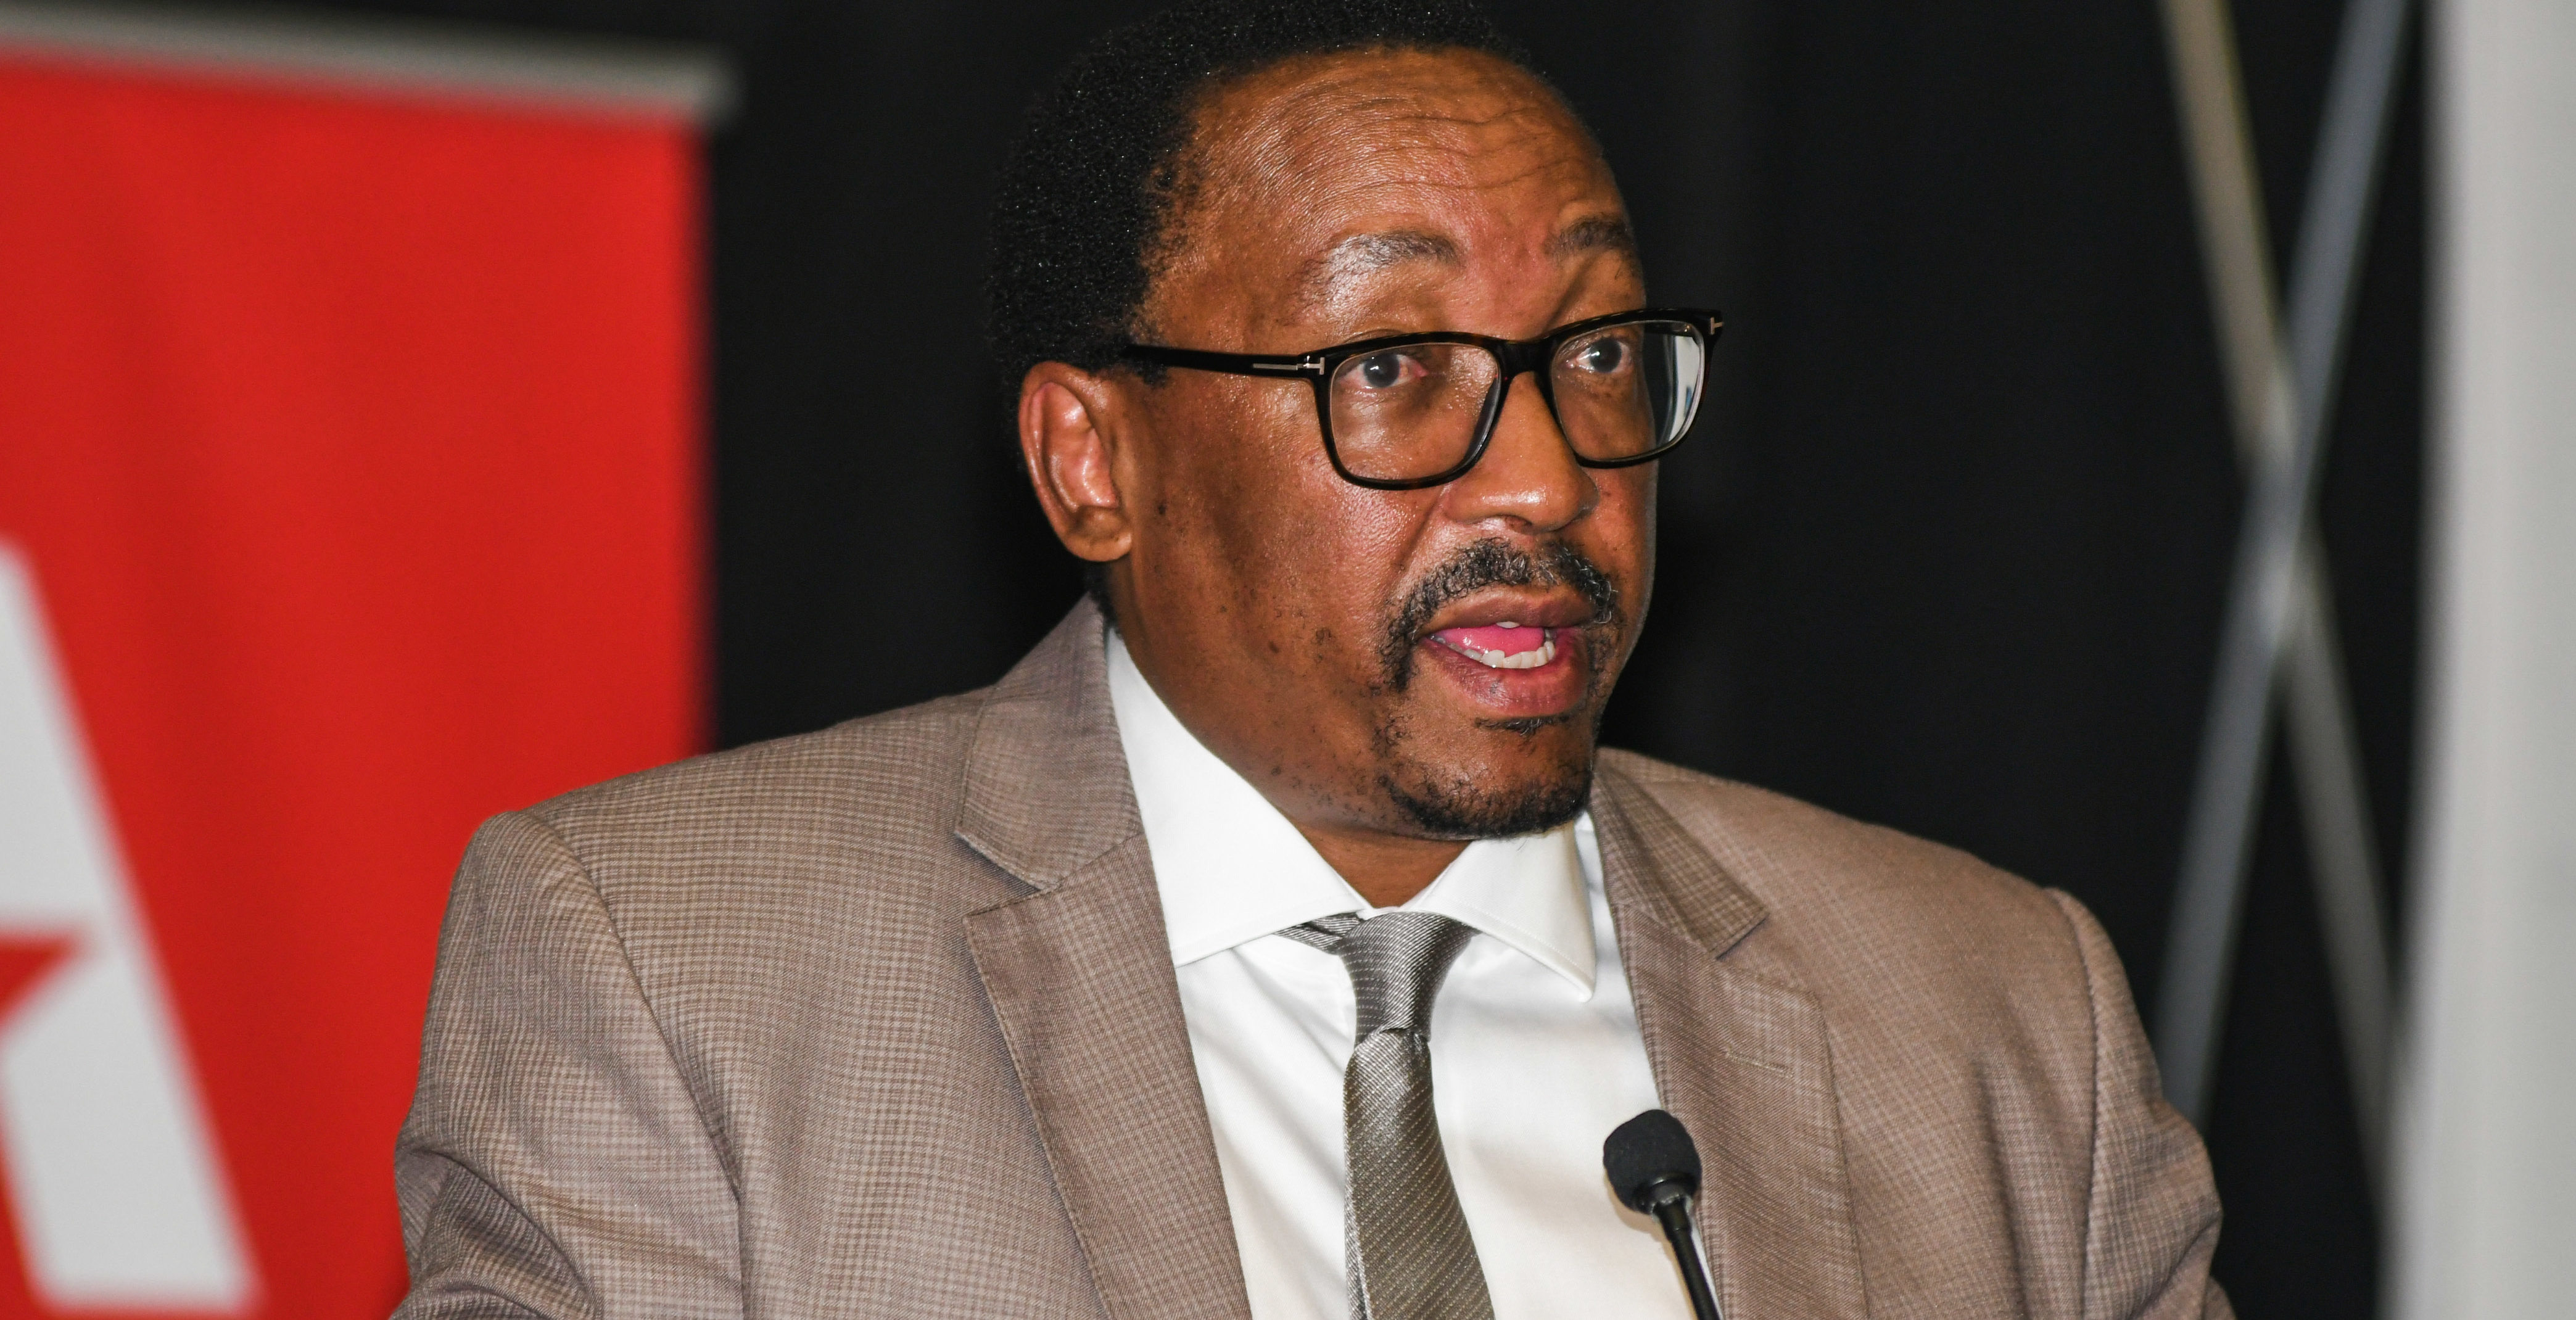 COUNCIL FARCE: eThekwini manager charged in R430m corruption case returns to work